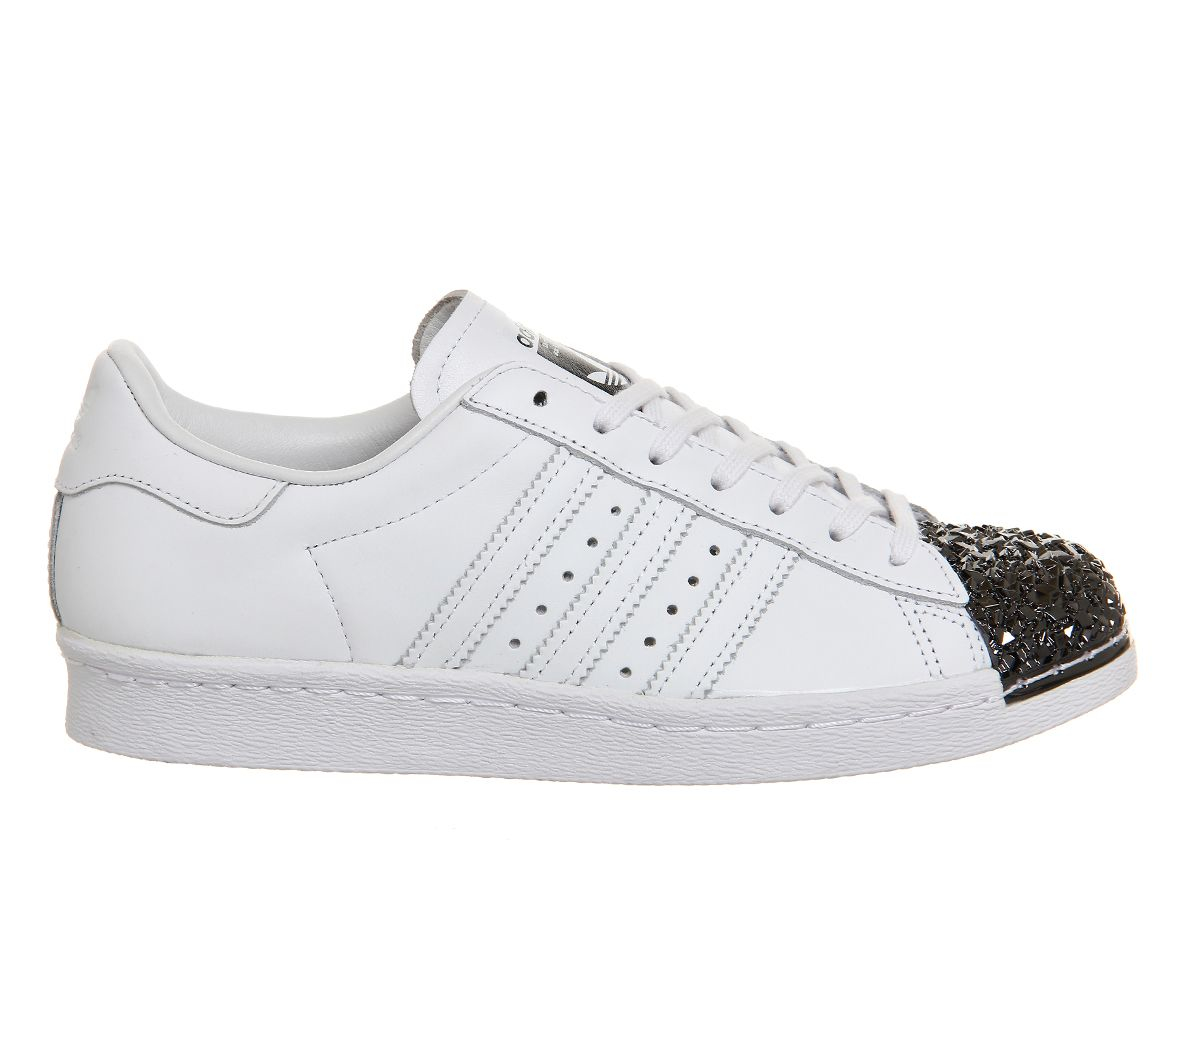 adidas Originals Leather Superstar 80`s Metal Toe Trainers in Black/White (White)